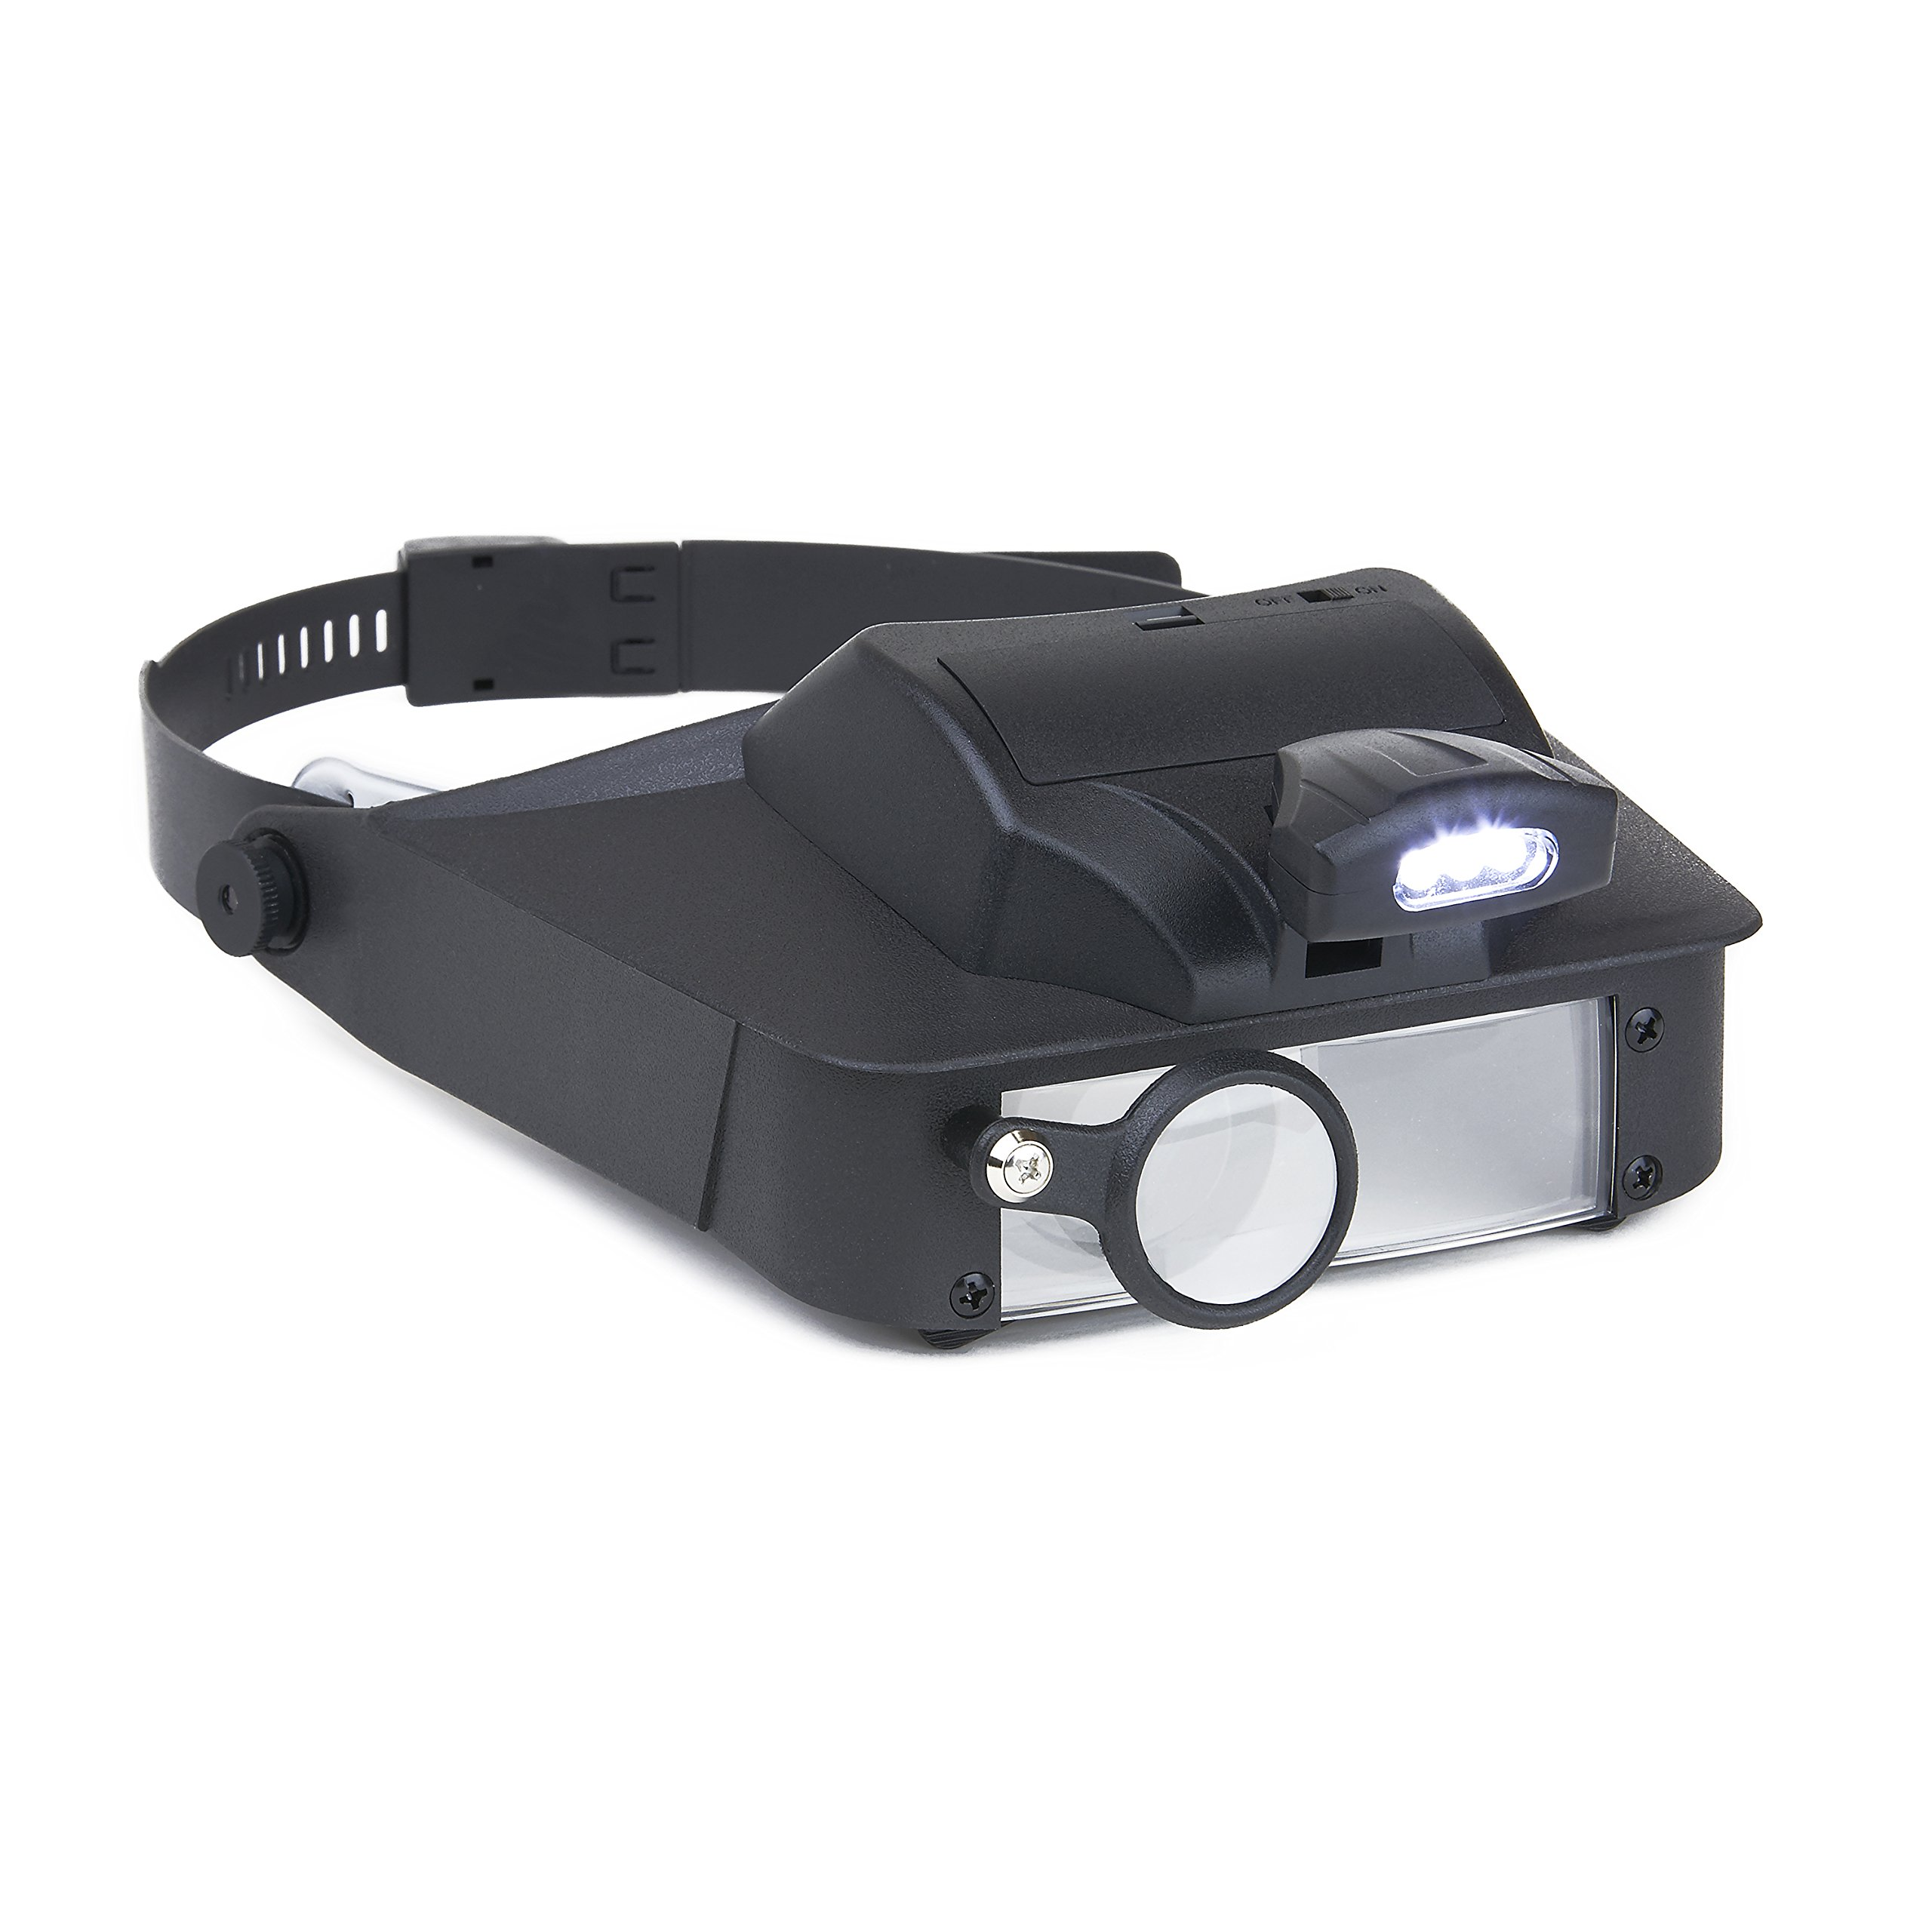 Carson LumiVisor Head Magnifier - Head Visor with LED Lighted Magnifier (2x/3x/5x/6x)  (LV-10) by Carson